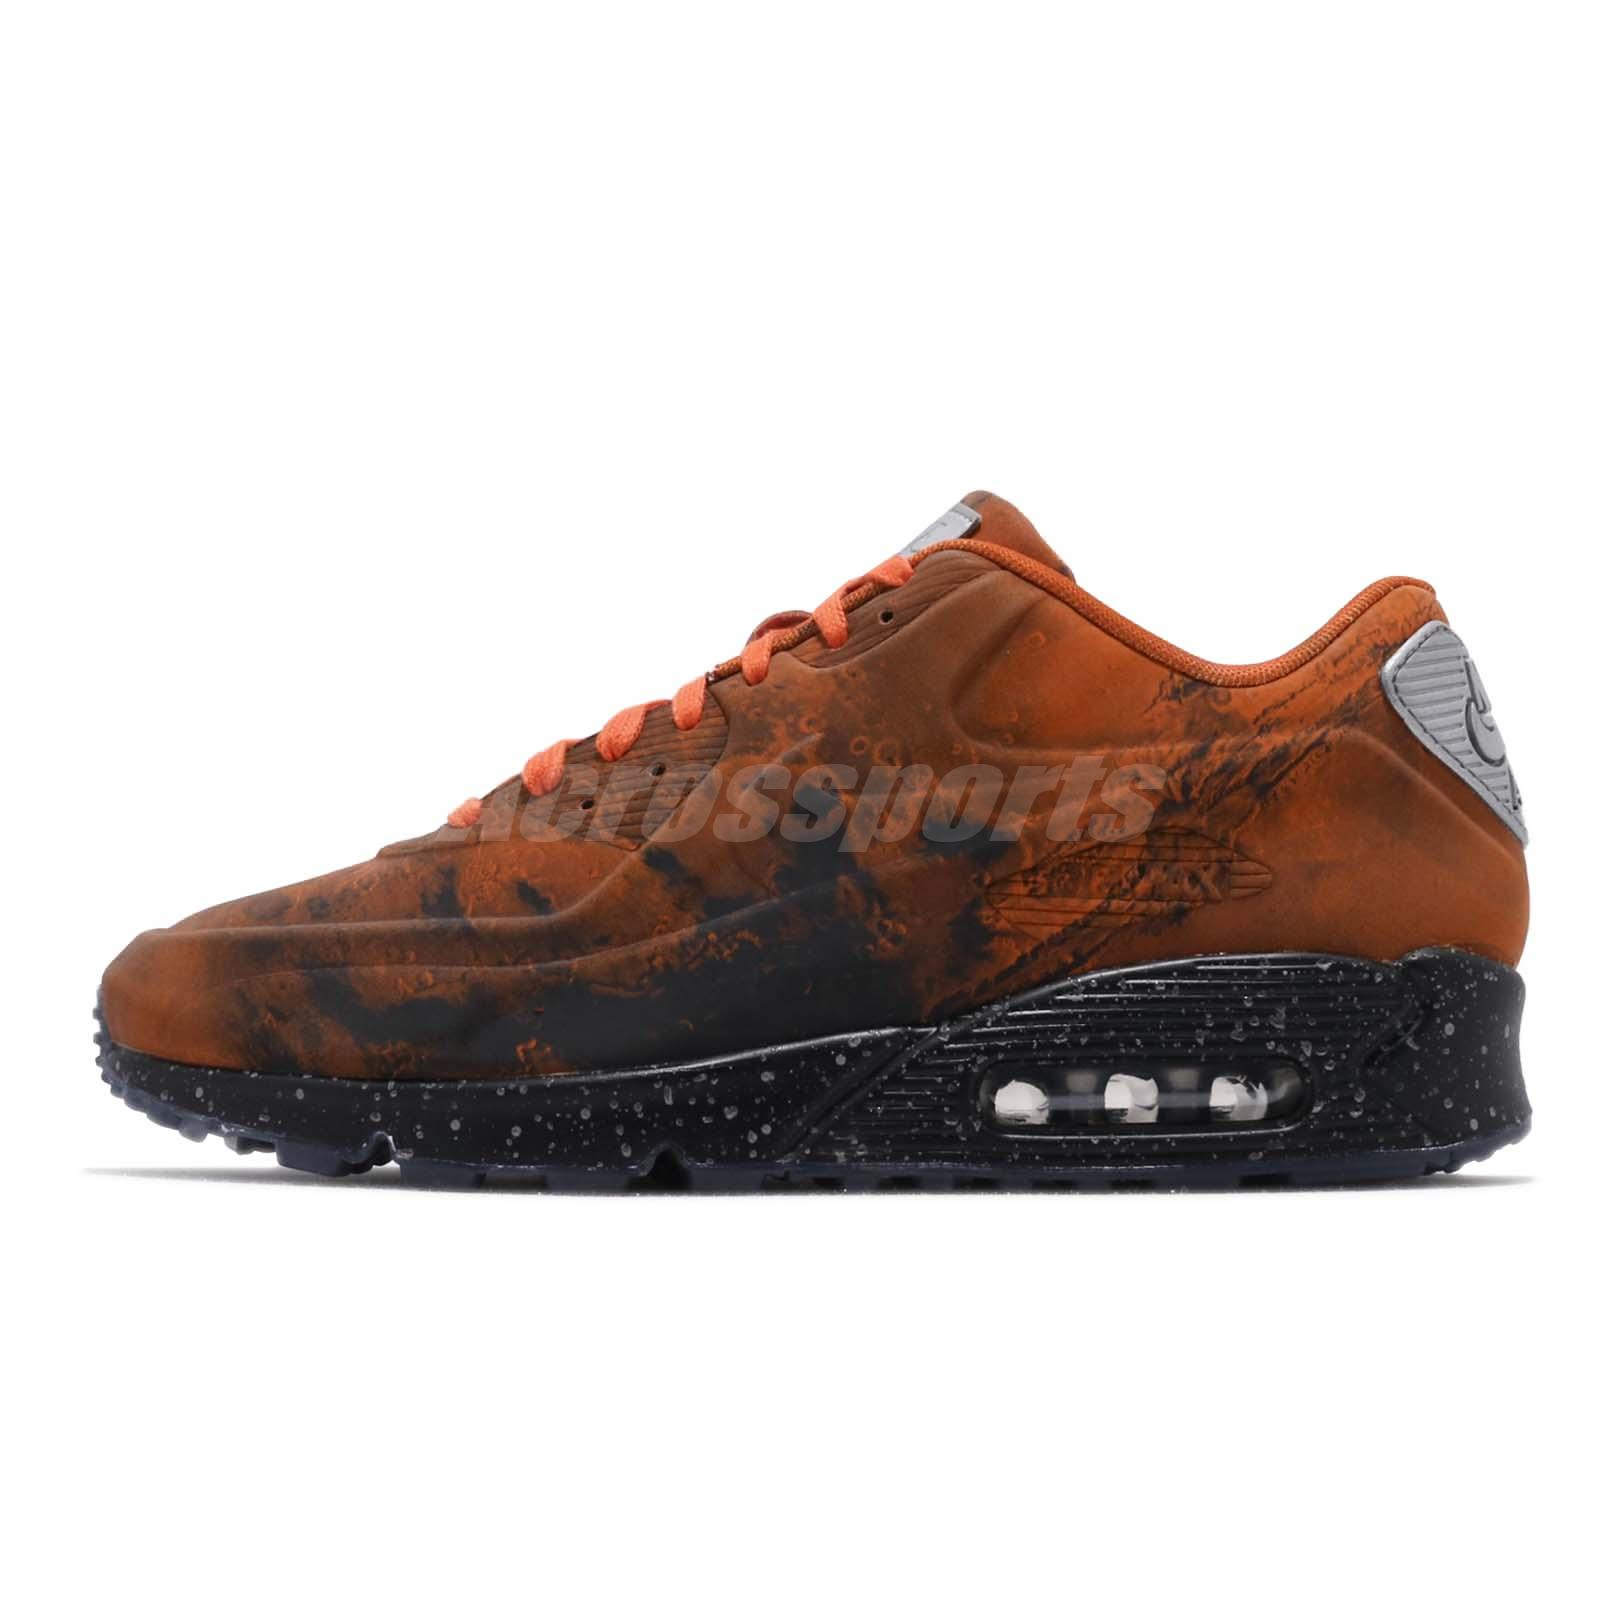 nike air max mars landing ebay - photo #12